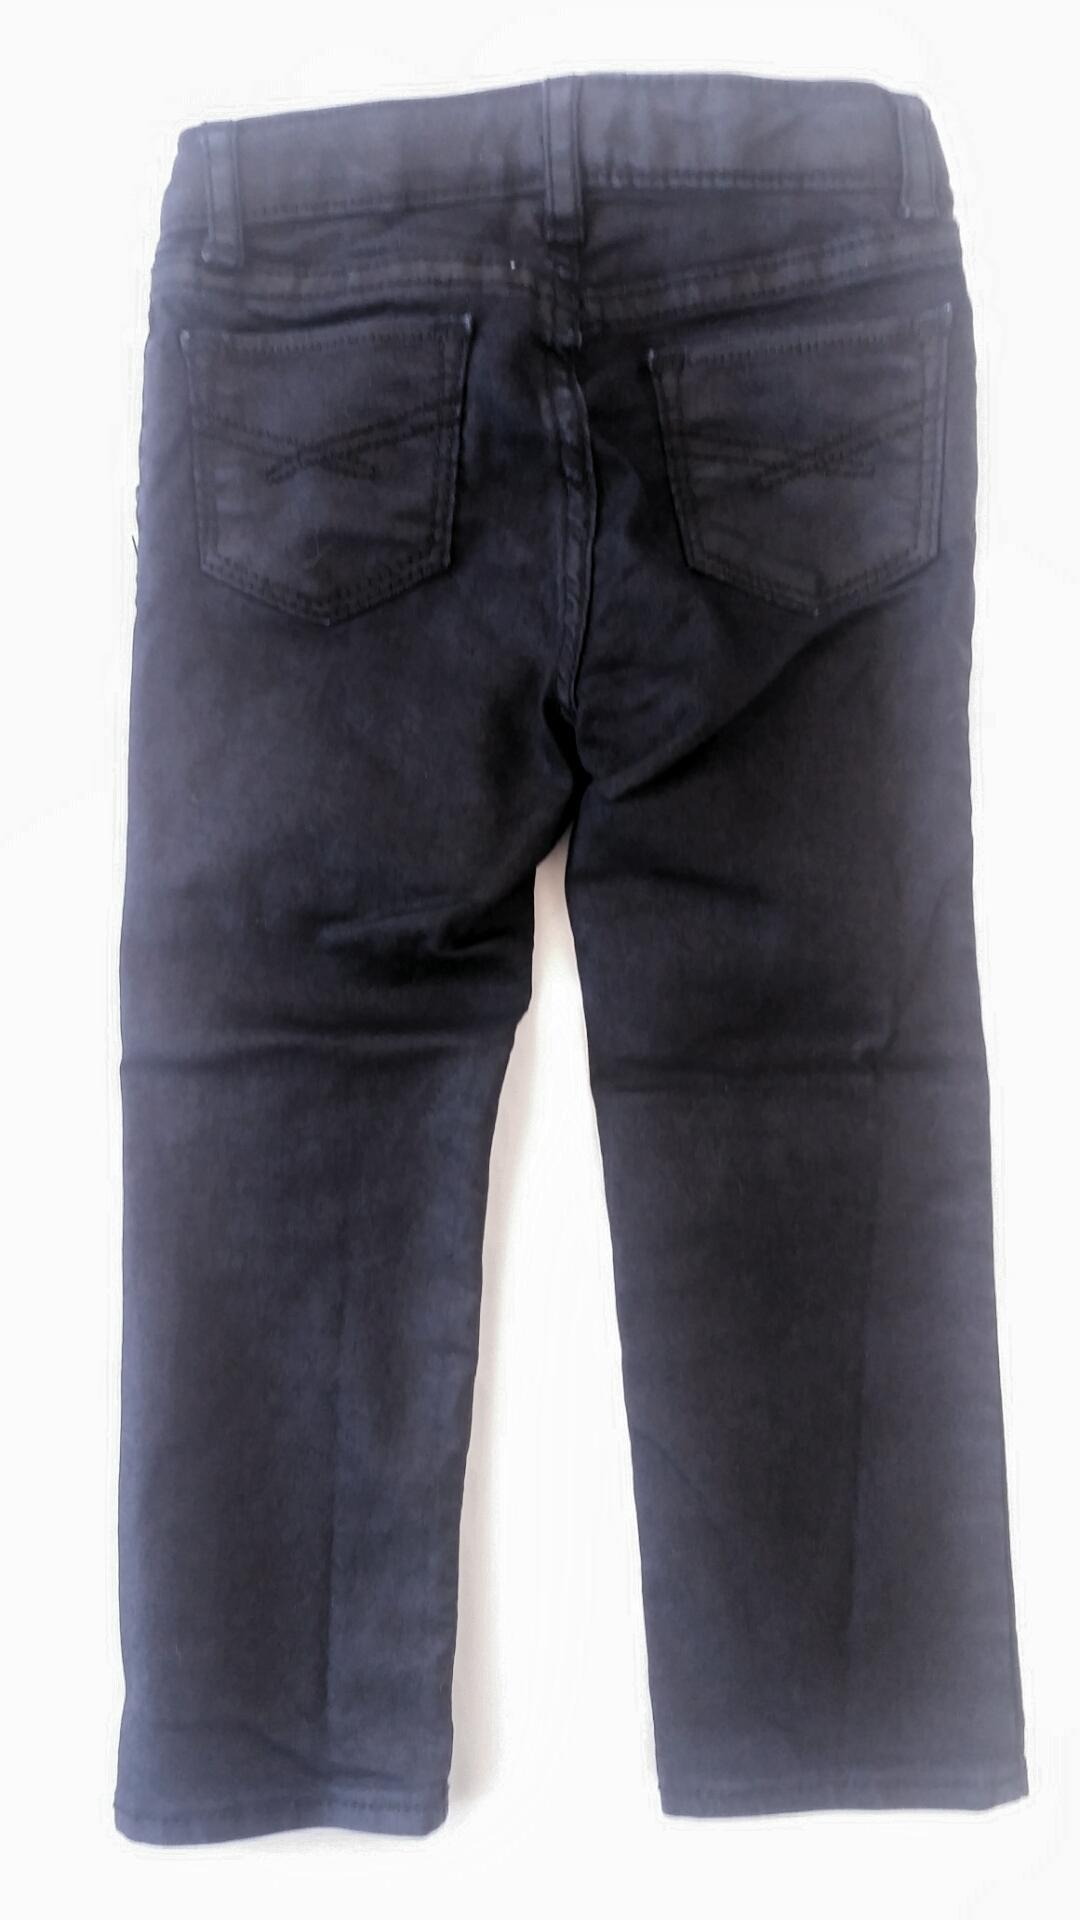 Gap-2-YEARS-Black-Jeans_2156237C.jpg